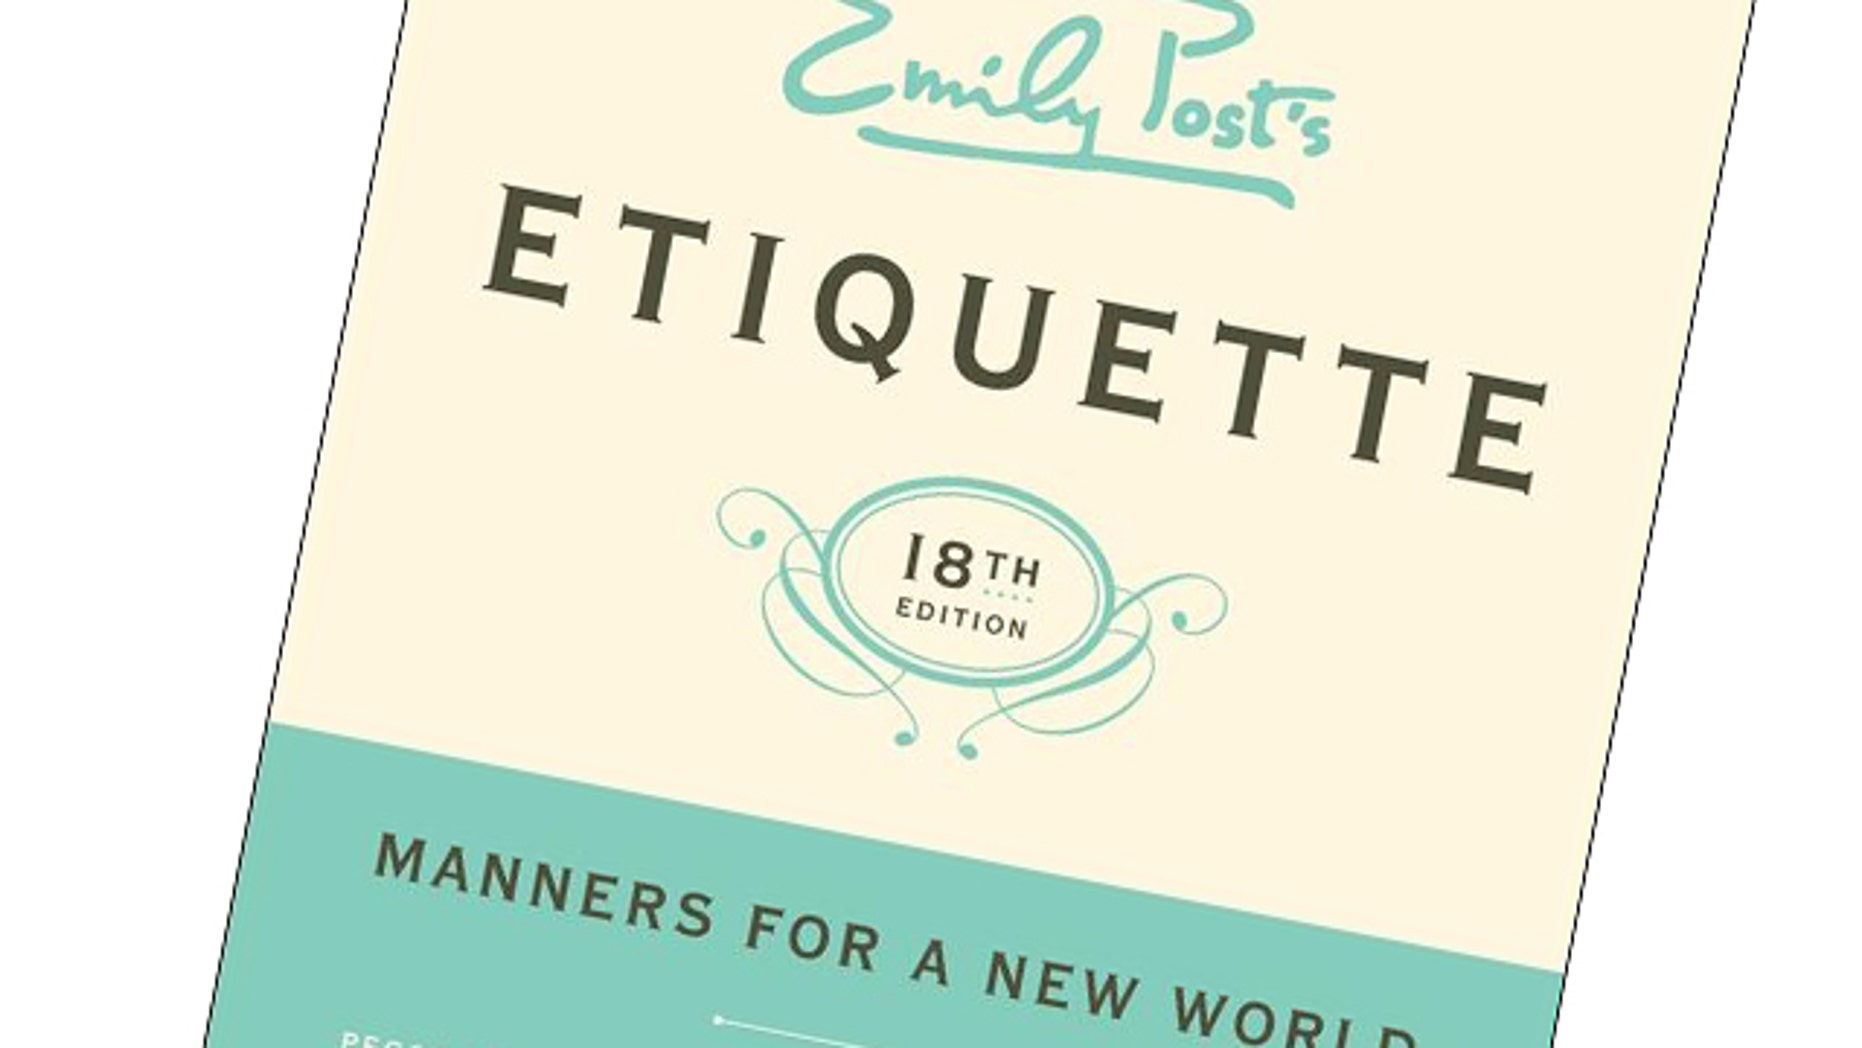 """The 18th editon of """"Emily Post's Etiquette,""""; the quintessential guide to modern manners, has been revised to include several chapters that cover manners in social media and technology."""